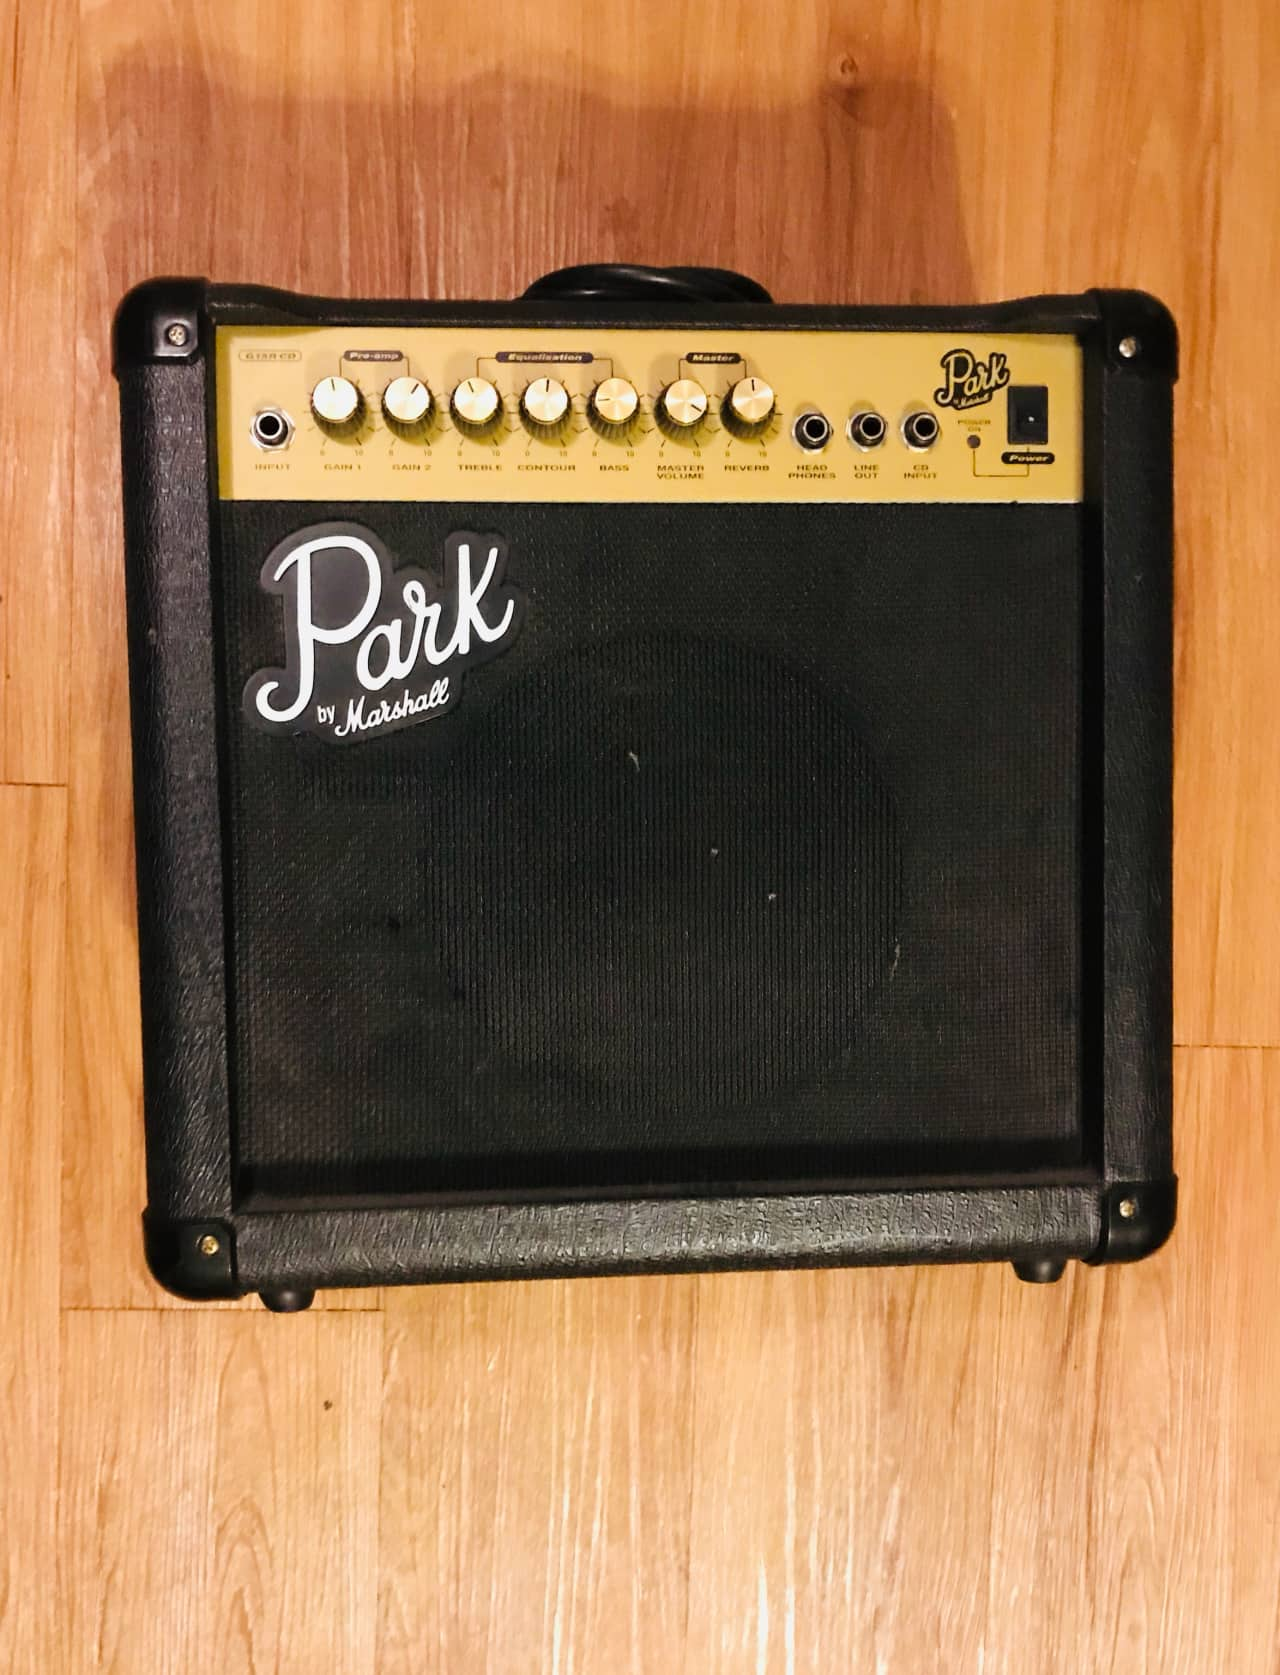 park g15rcd by marshall 1x8 15 watt combo amp reverb. Black Bedroom Furniture Sets. Home Design Ideas